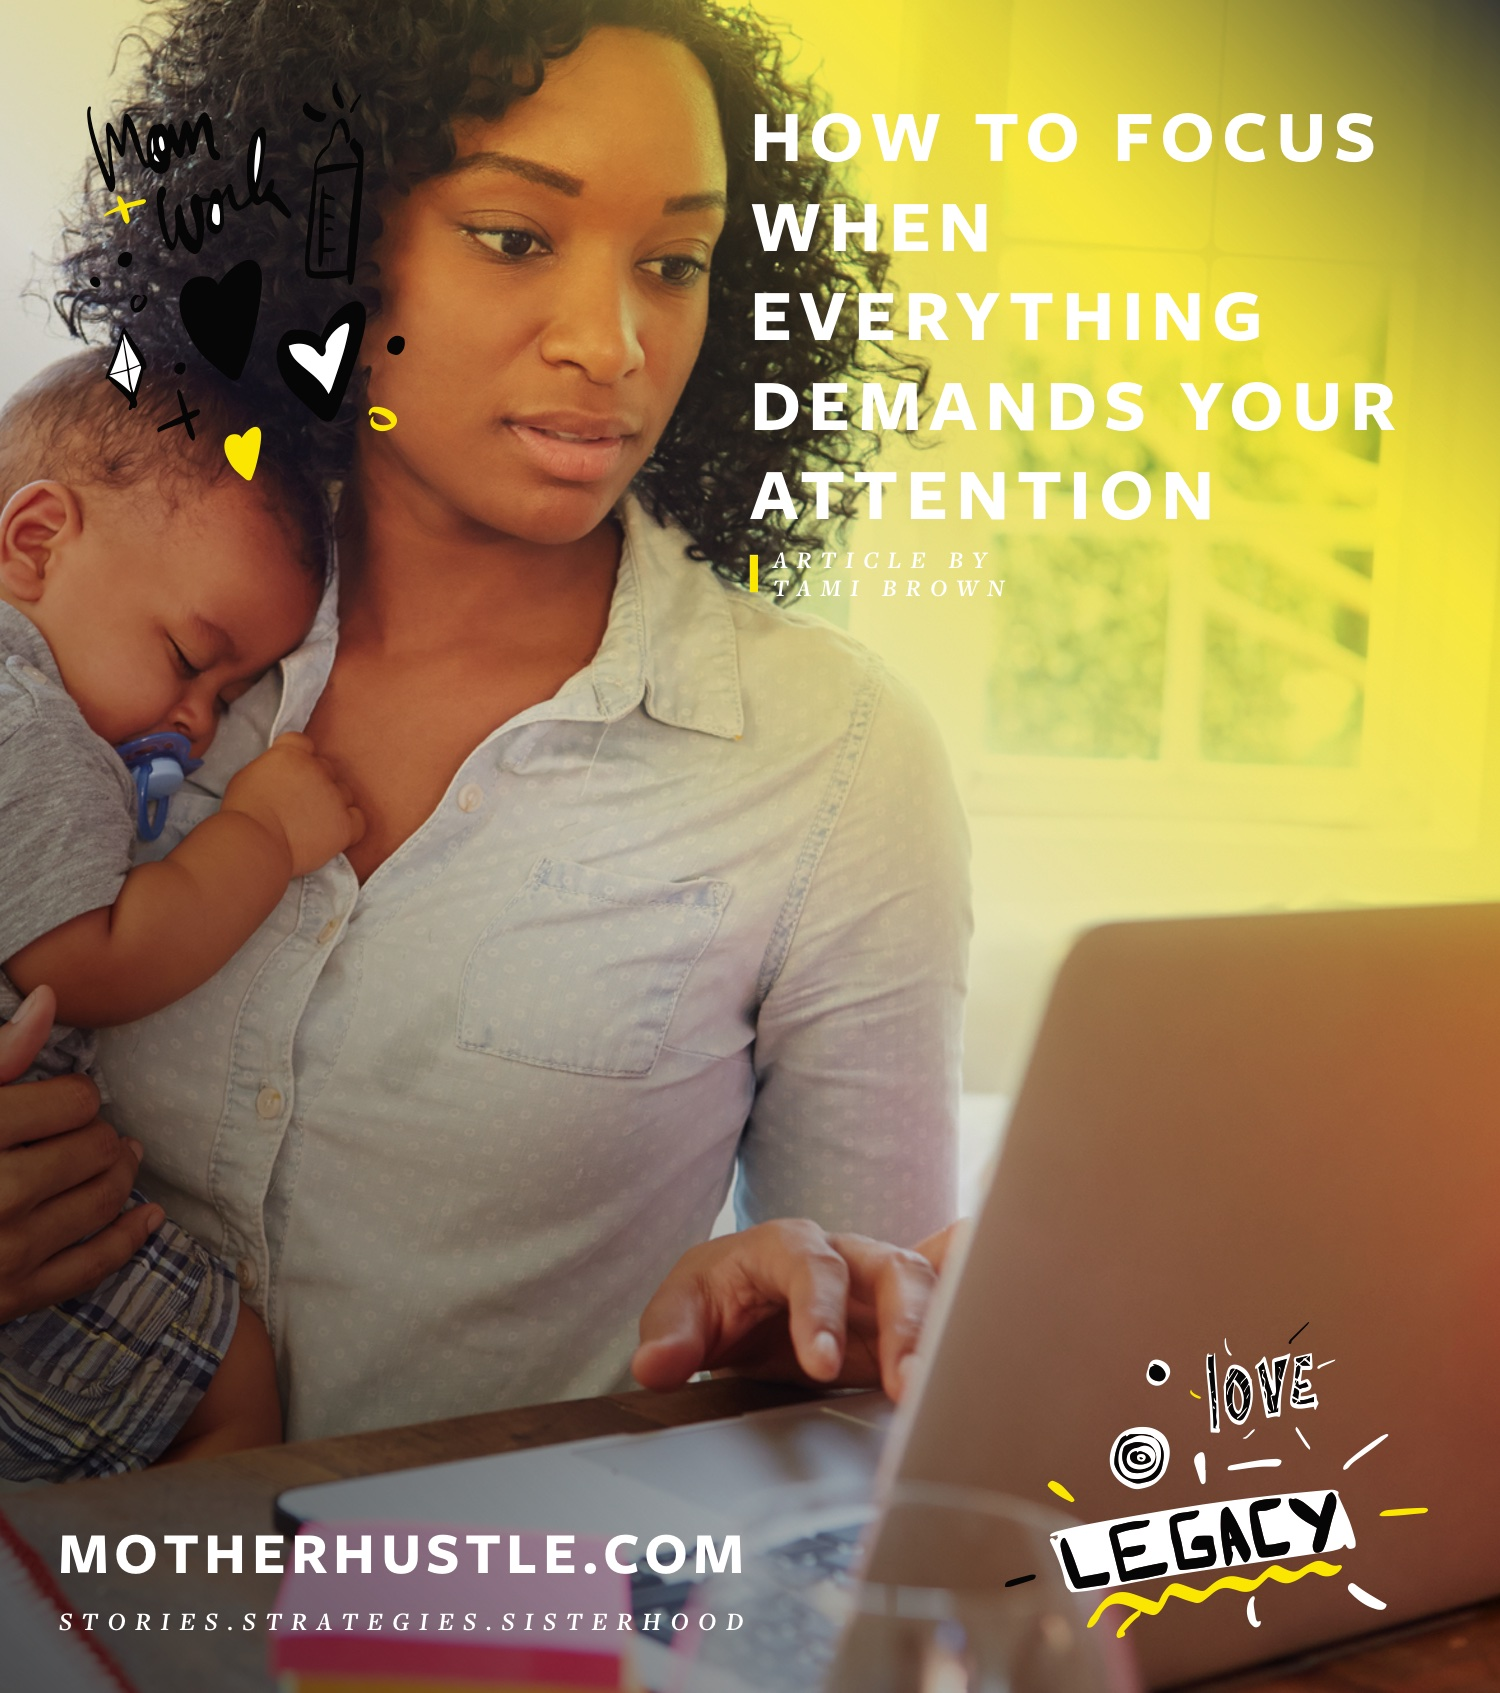 How to Focus When Everything Demands Your Attention - by Tami Brown for MotherHustle